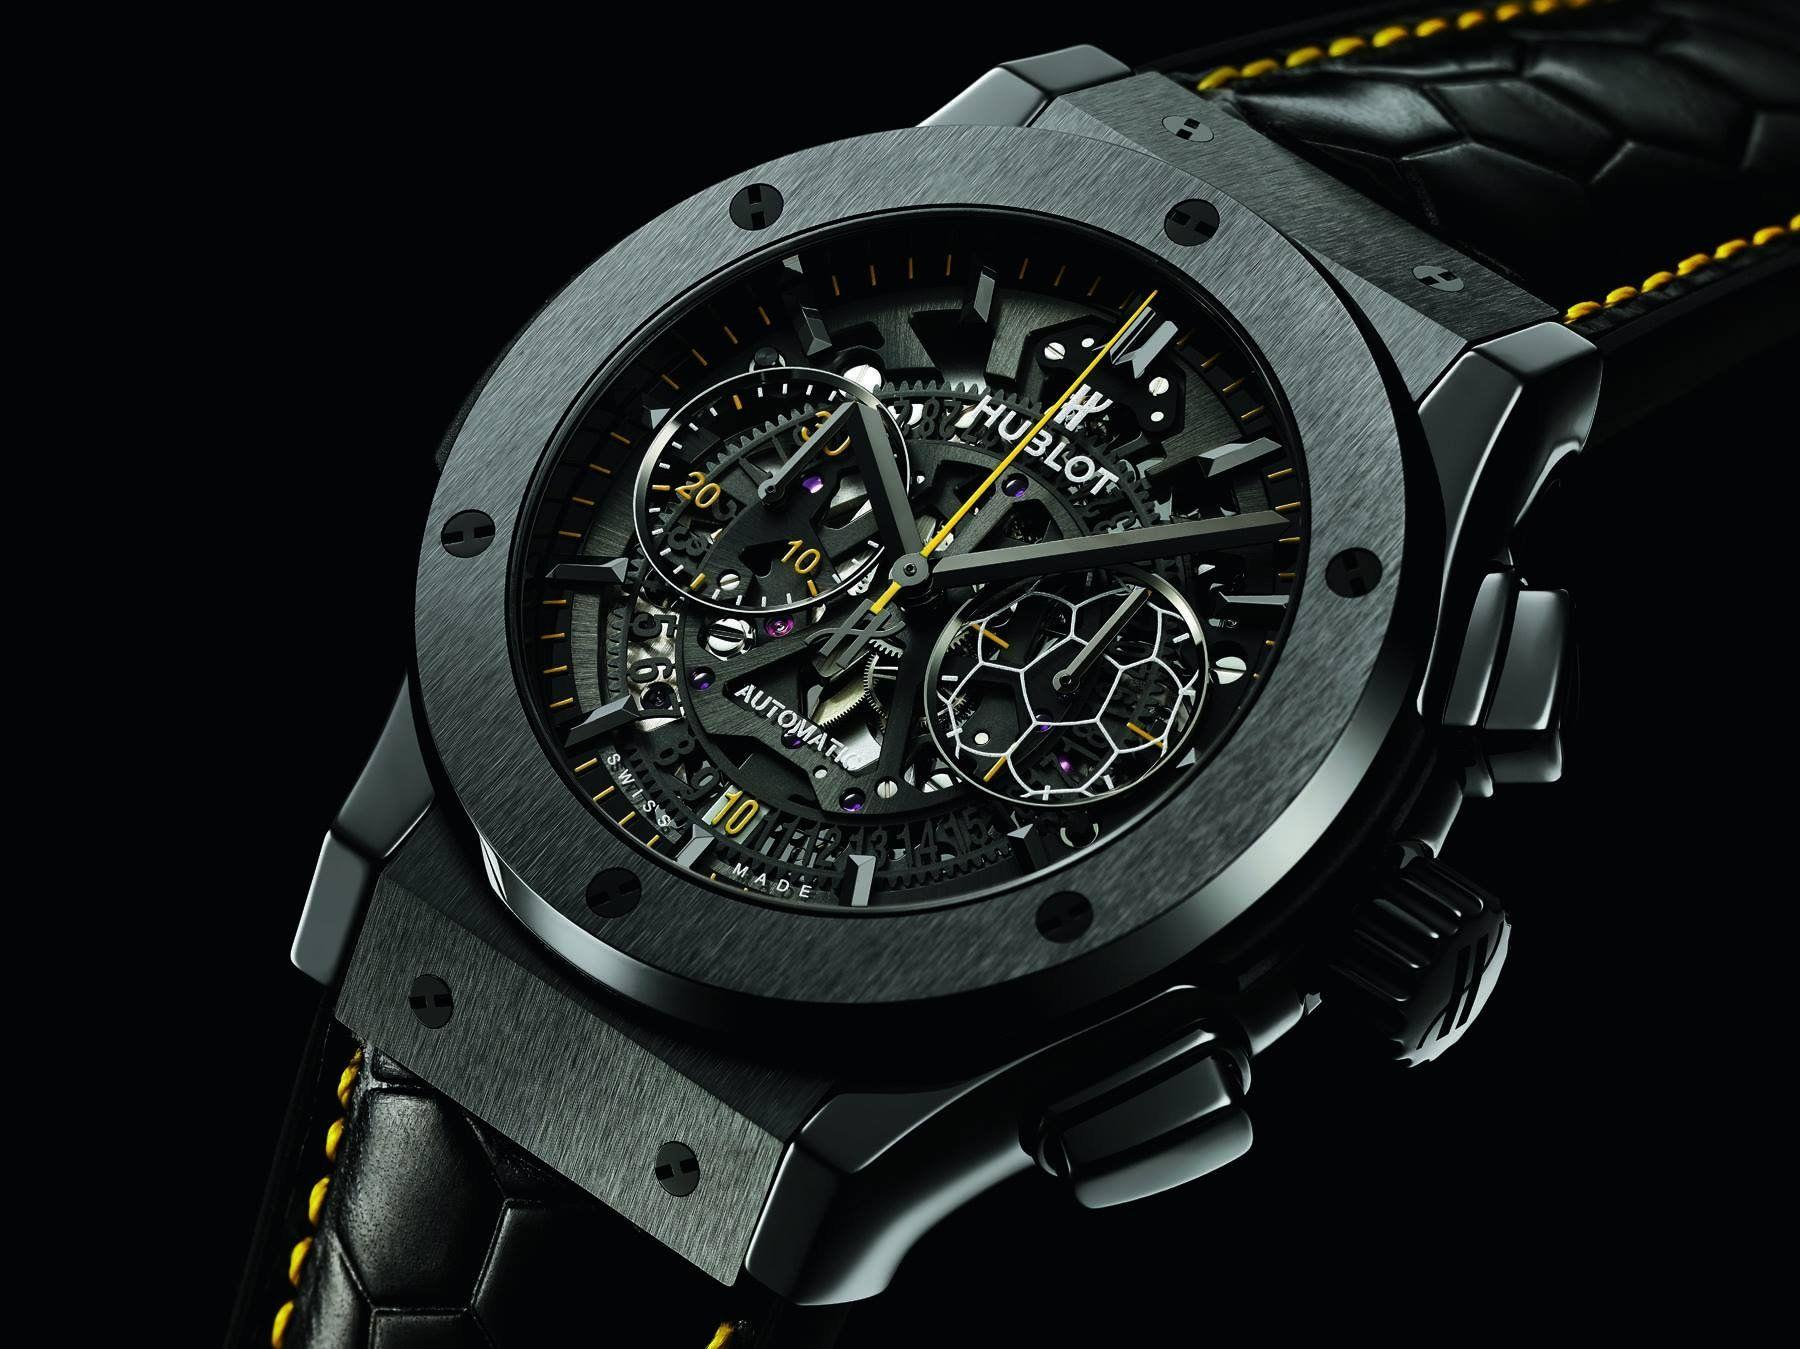 Hublot Wallpapers - Wallpaper Cave